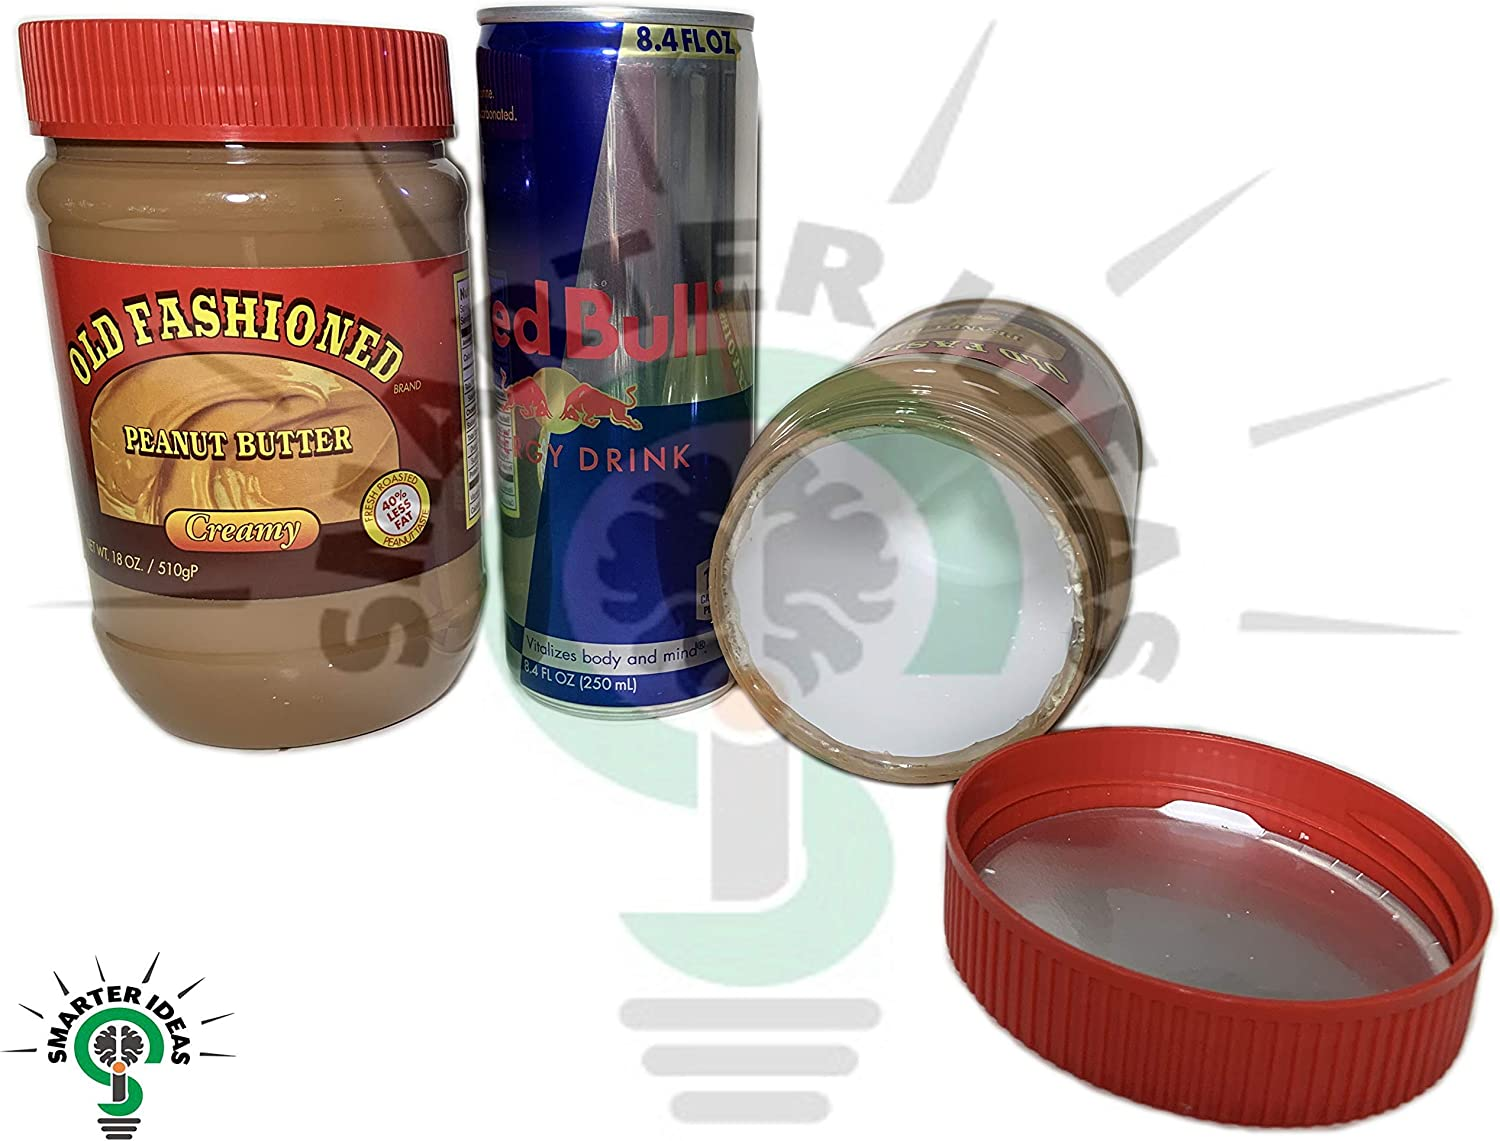 Fake Peanut Butter and Red Bull Safe Diversion Secret Stash Safes with Hidden Storage to Hide Money Jewelry Anything